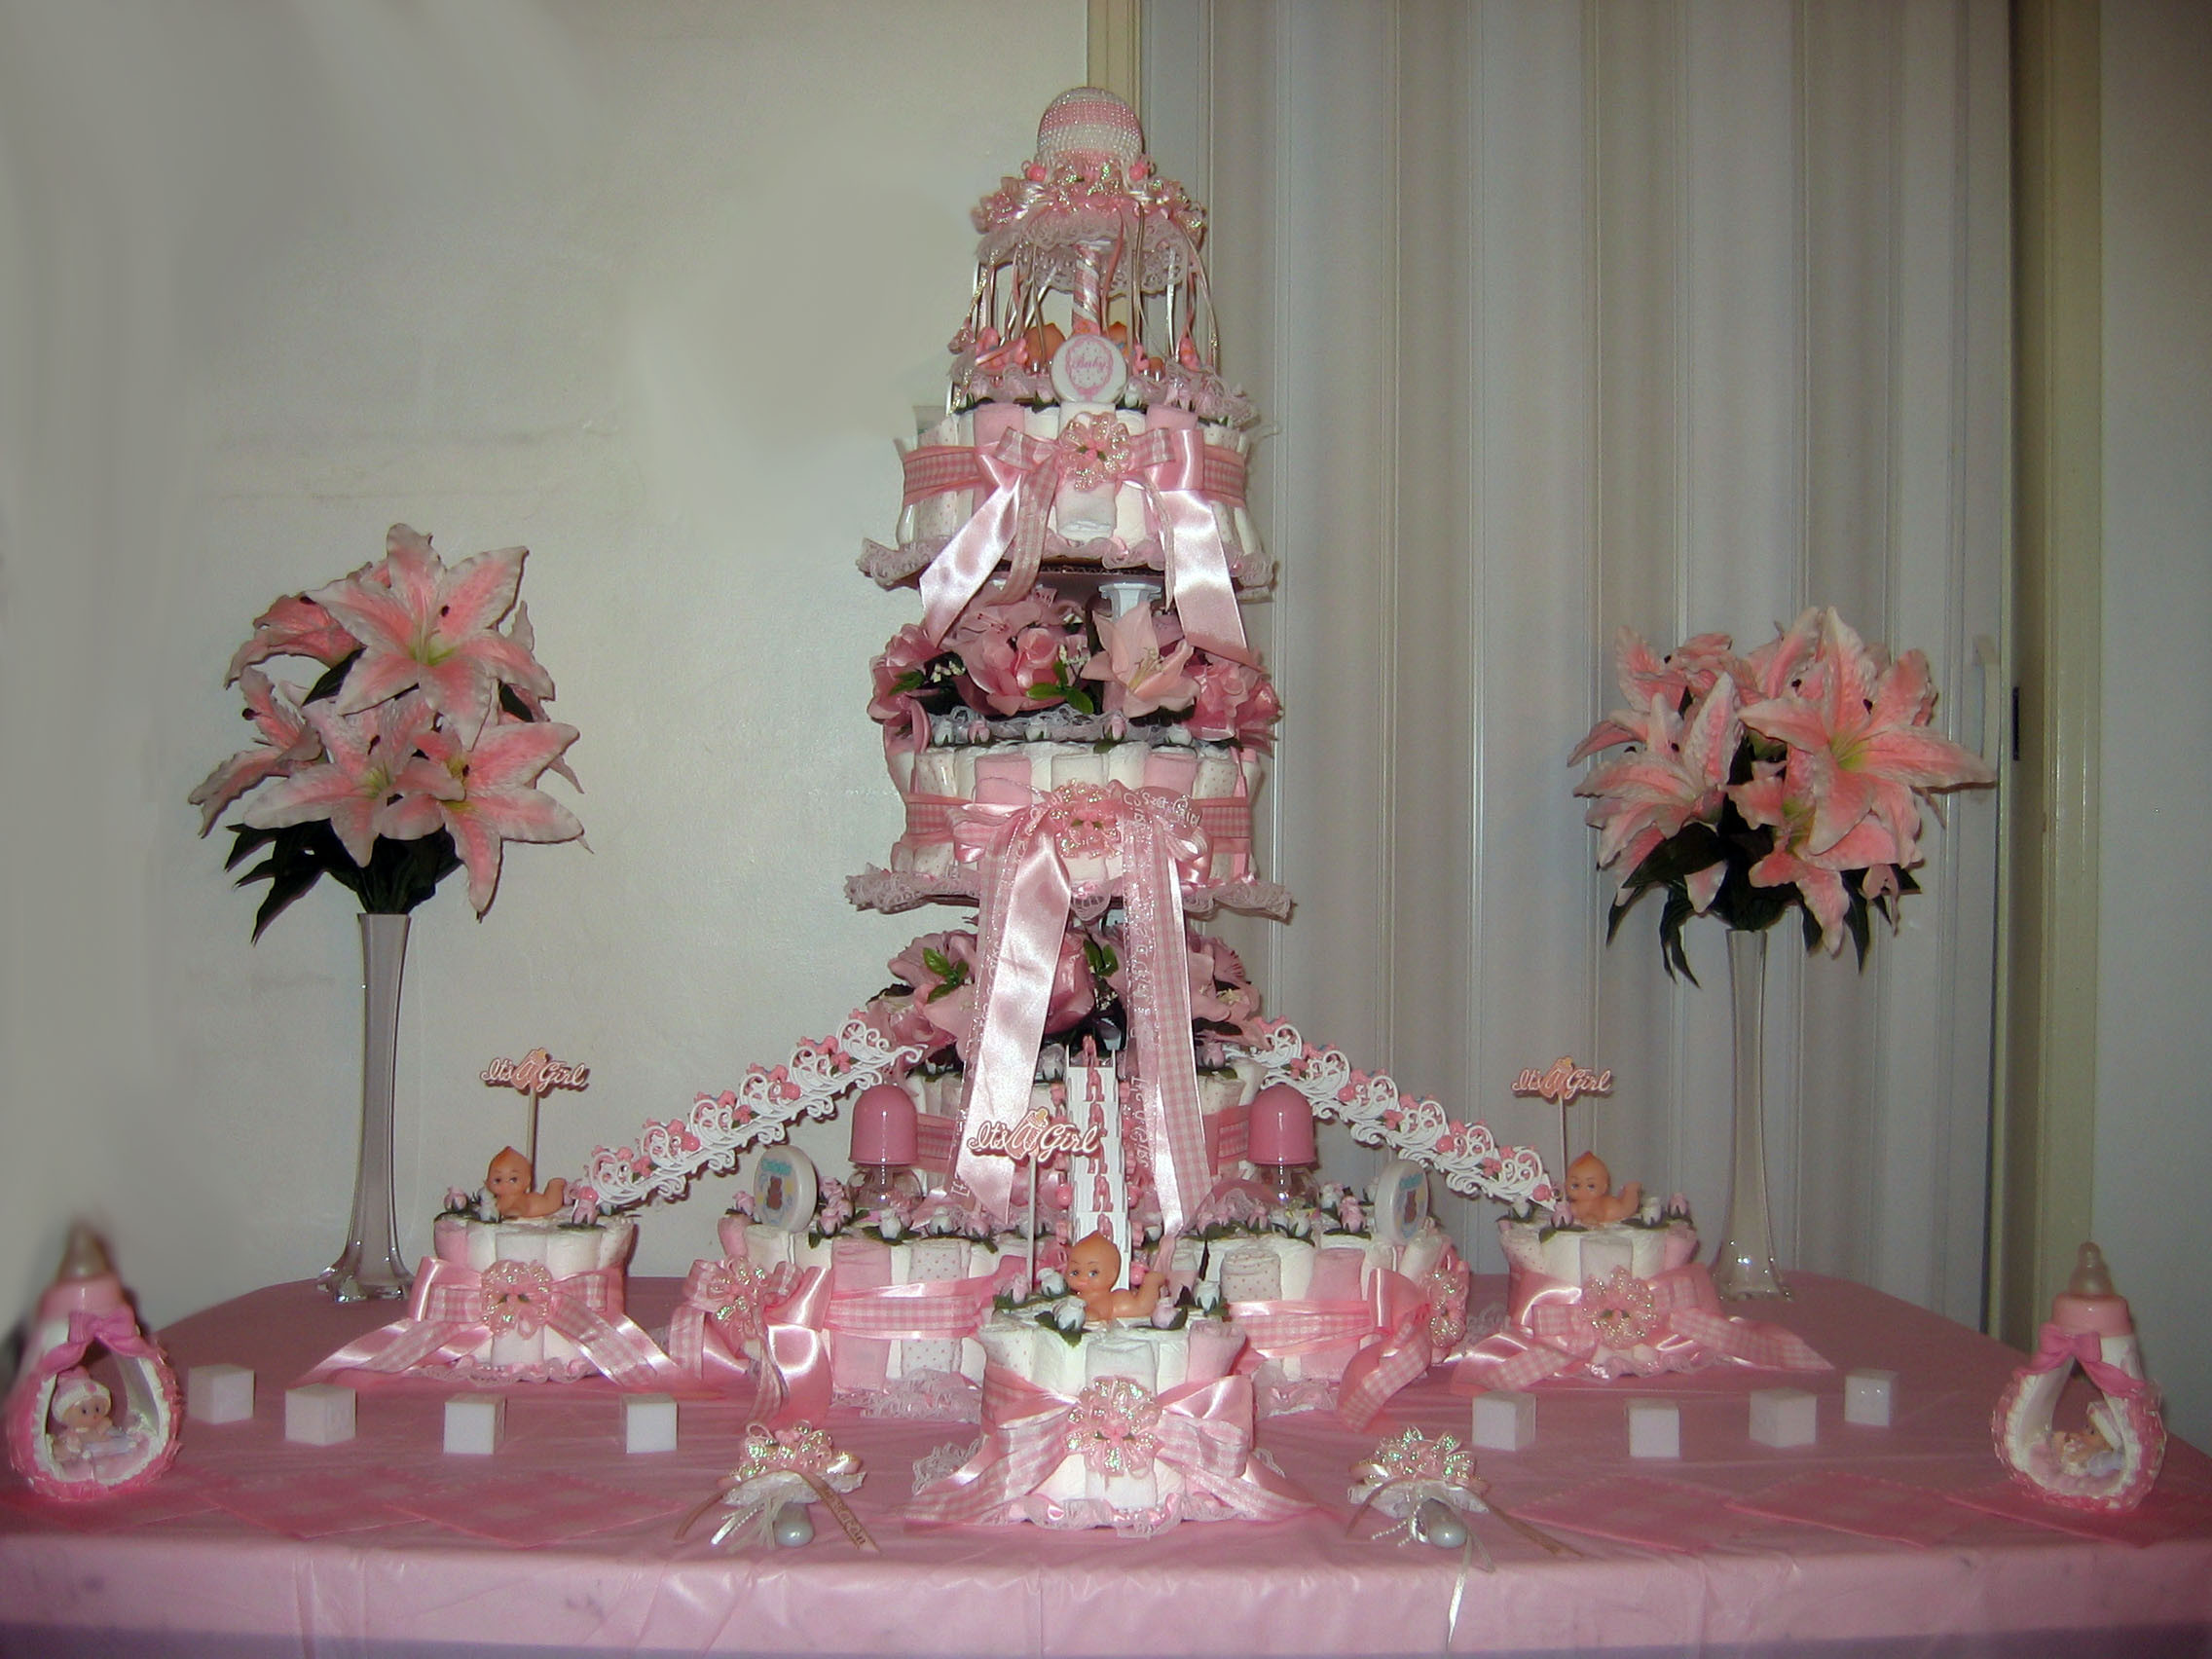 Baby Shower Diaper Cakes Inspirational Pink and White Diaper Cake Front View Of Gorgeous 41 Ideas Baby Shower Diaper Cakes